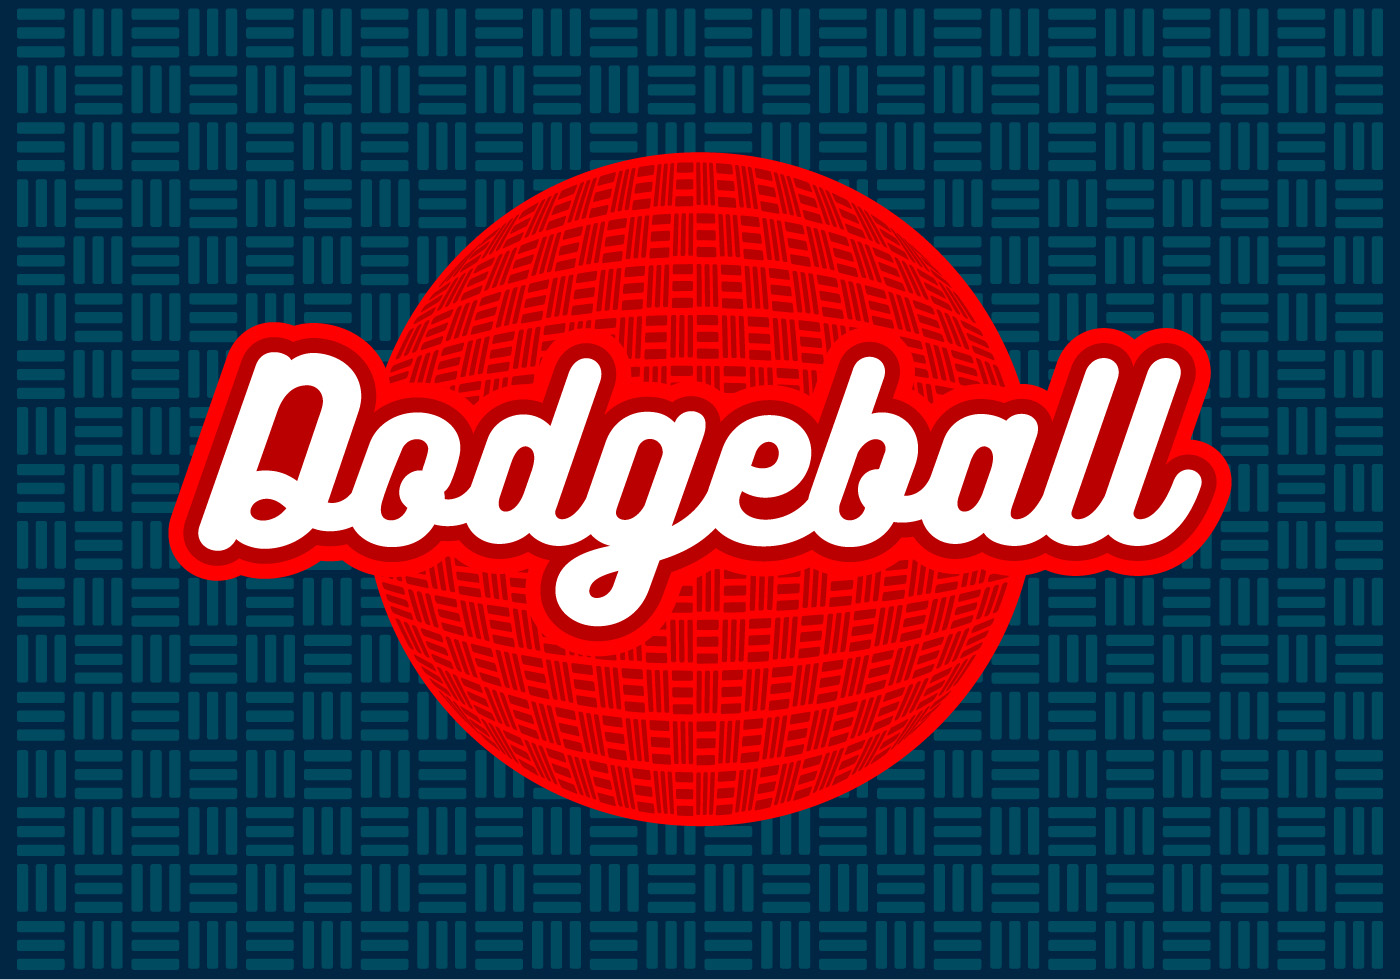 dodgeball free vector design download free vector art  stock graphics   images dodgeball clipart transparent background Dodgeball Clip Art Black and White